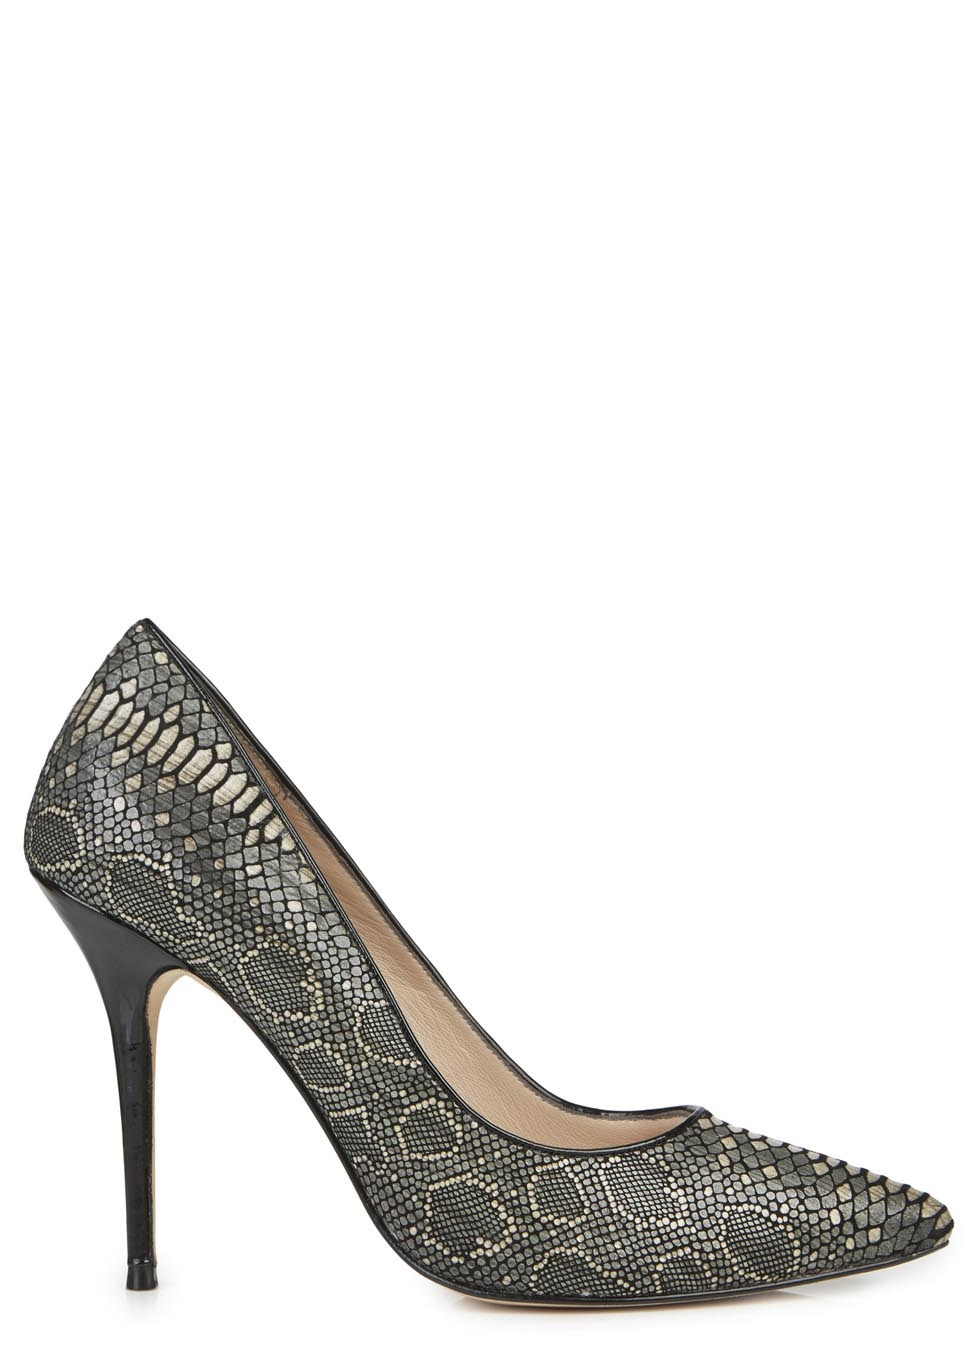 Adelite C Metallic Grey Snake Effect Pumps - secondary colour: champagne; occasions: evening, occasion; material: leather; heel: stiletto; toe: pointed toe; style: courts; finish: plain; pattern: animal print; heel height: very high; predominant colour: pewter; season: s/s 2014